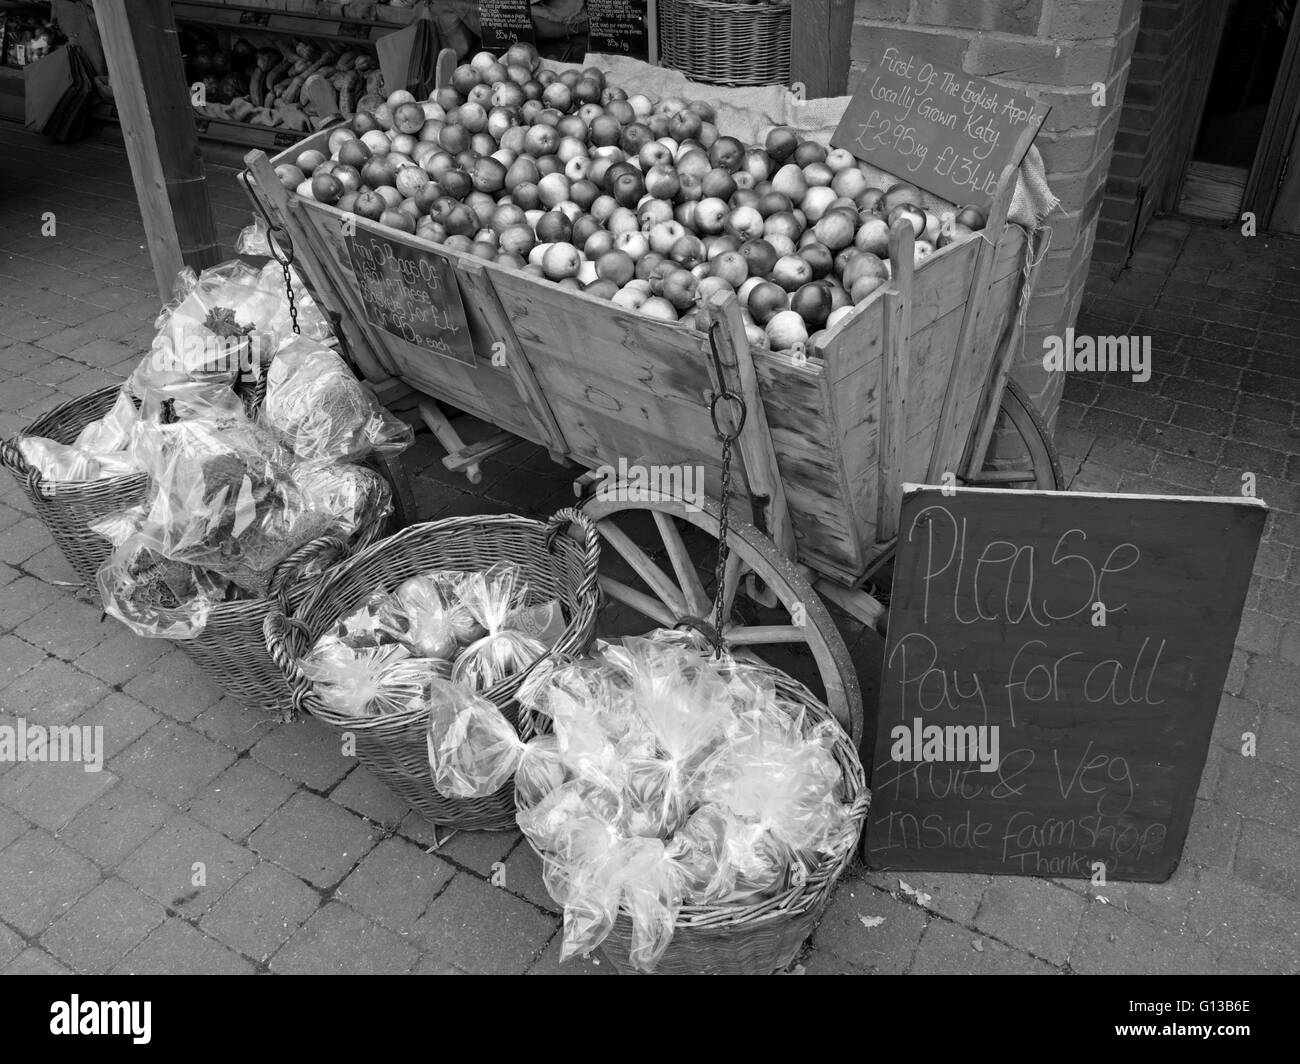 Locally grown English Apples for sale in old style wooden apple cart, Farm Shop, Doddington, Lincolnshire, England, - Stock Image